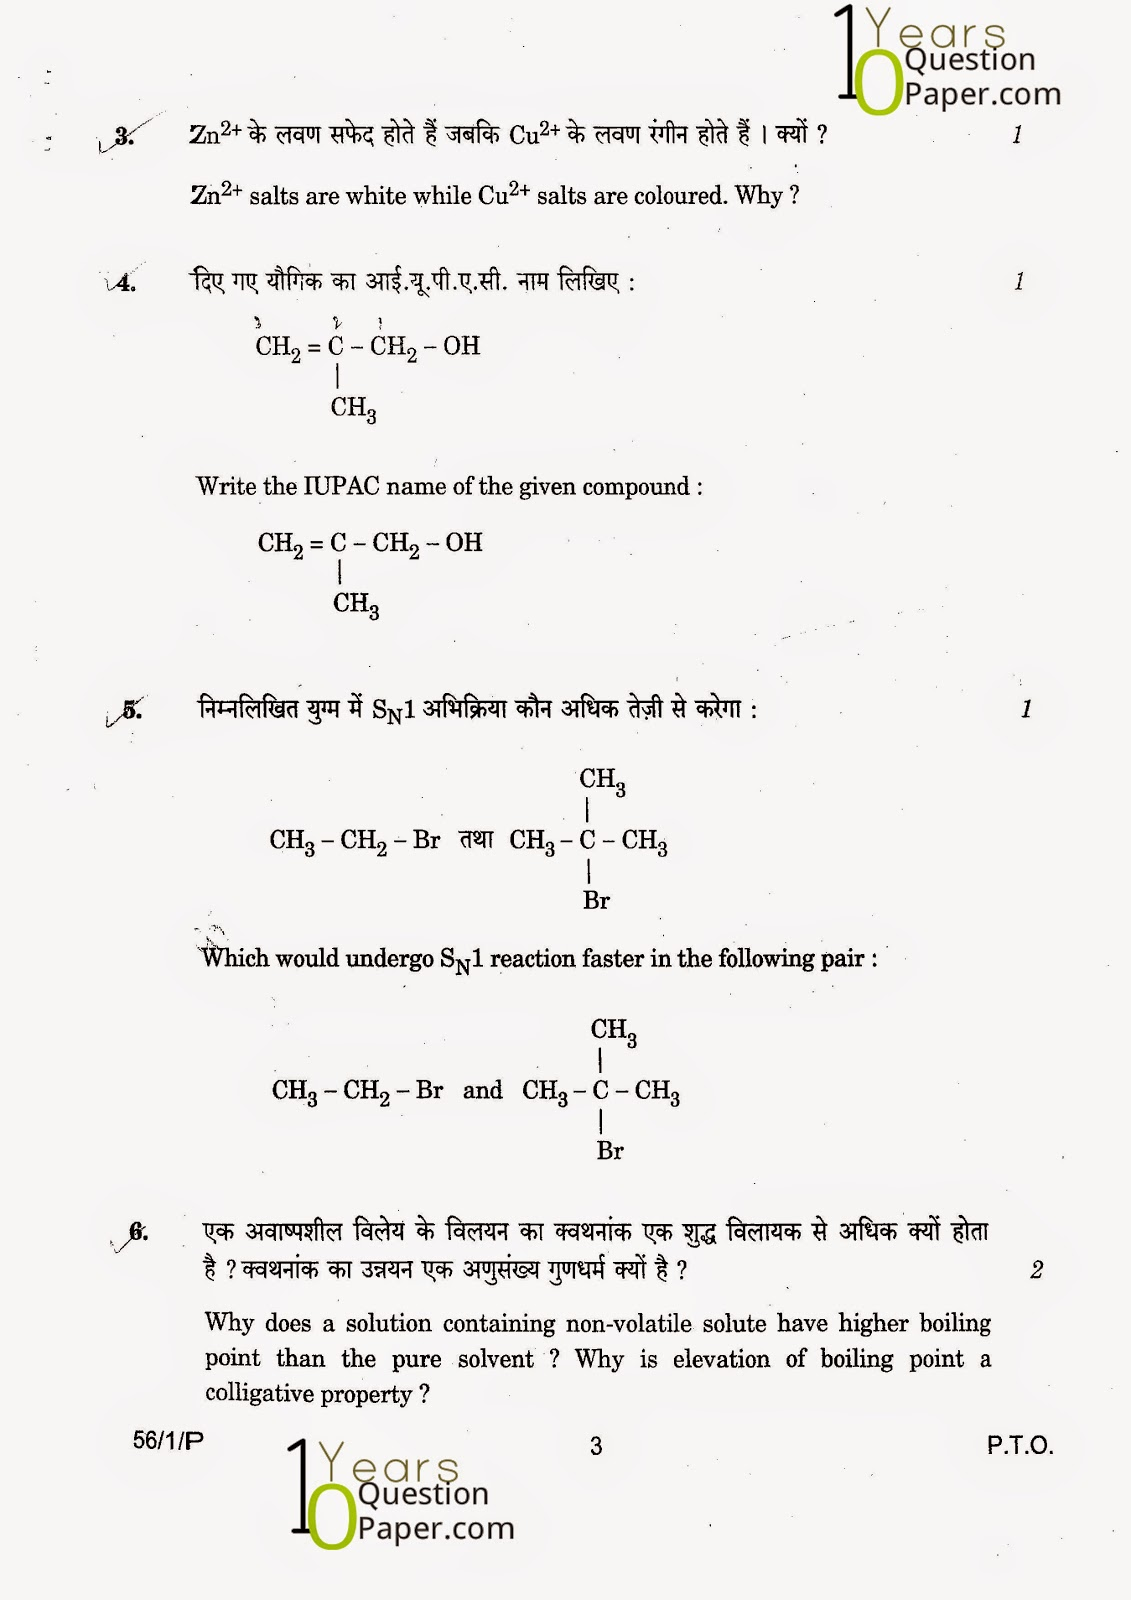 chemistry papers The following papers from the history of chemistry are available as html files many are seminal papers in their fields some are interesting curiosities.